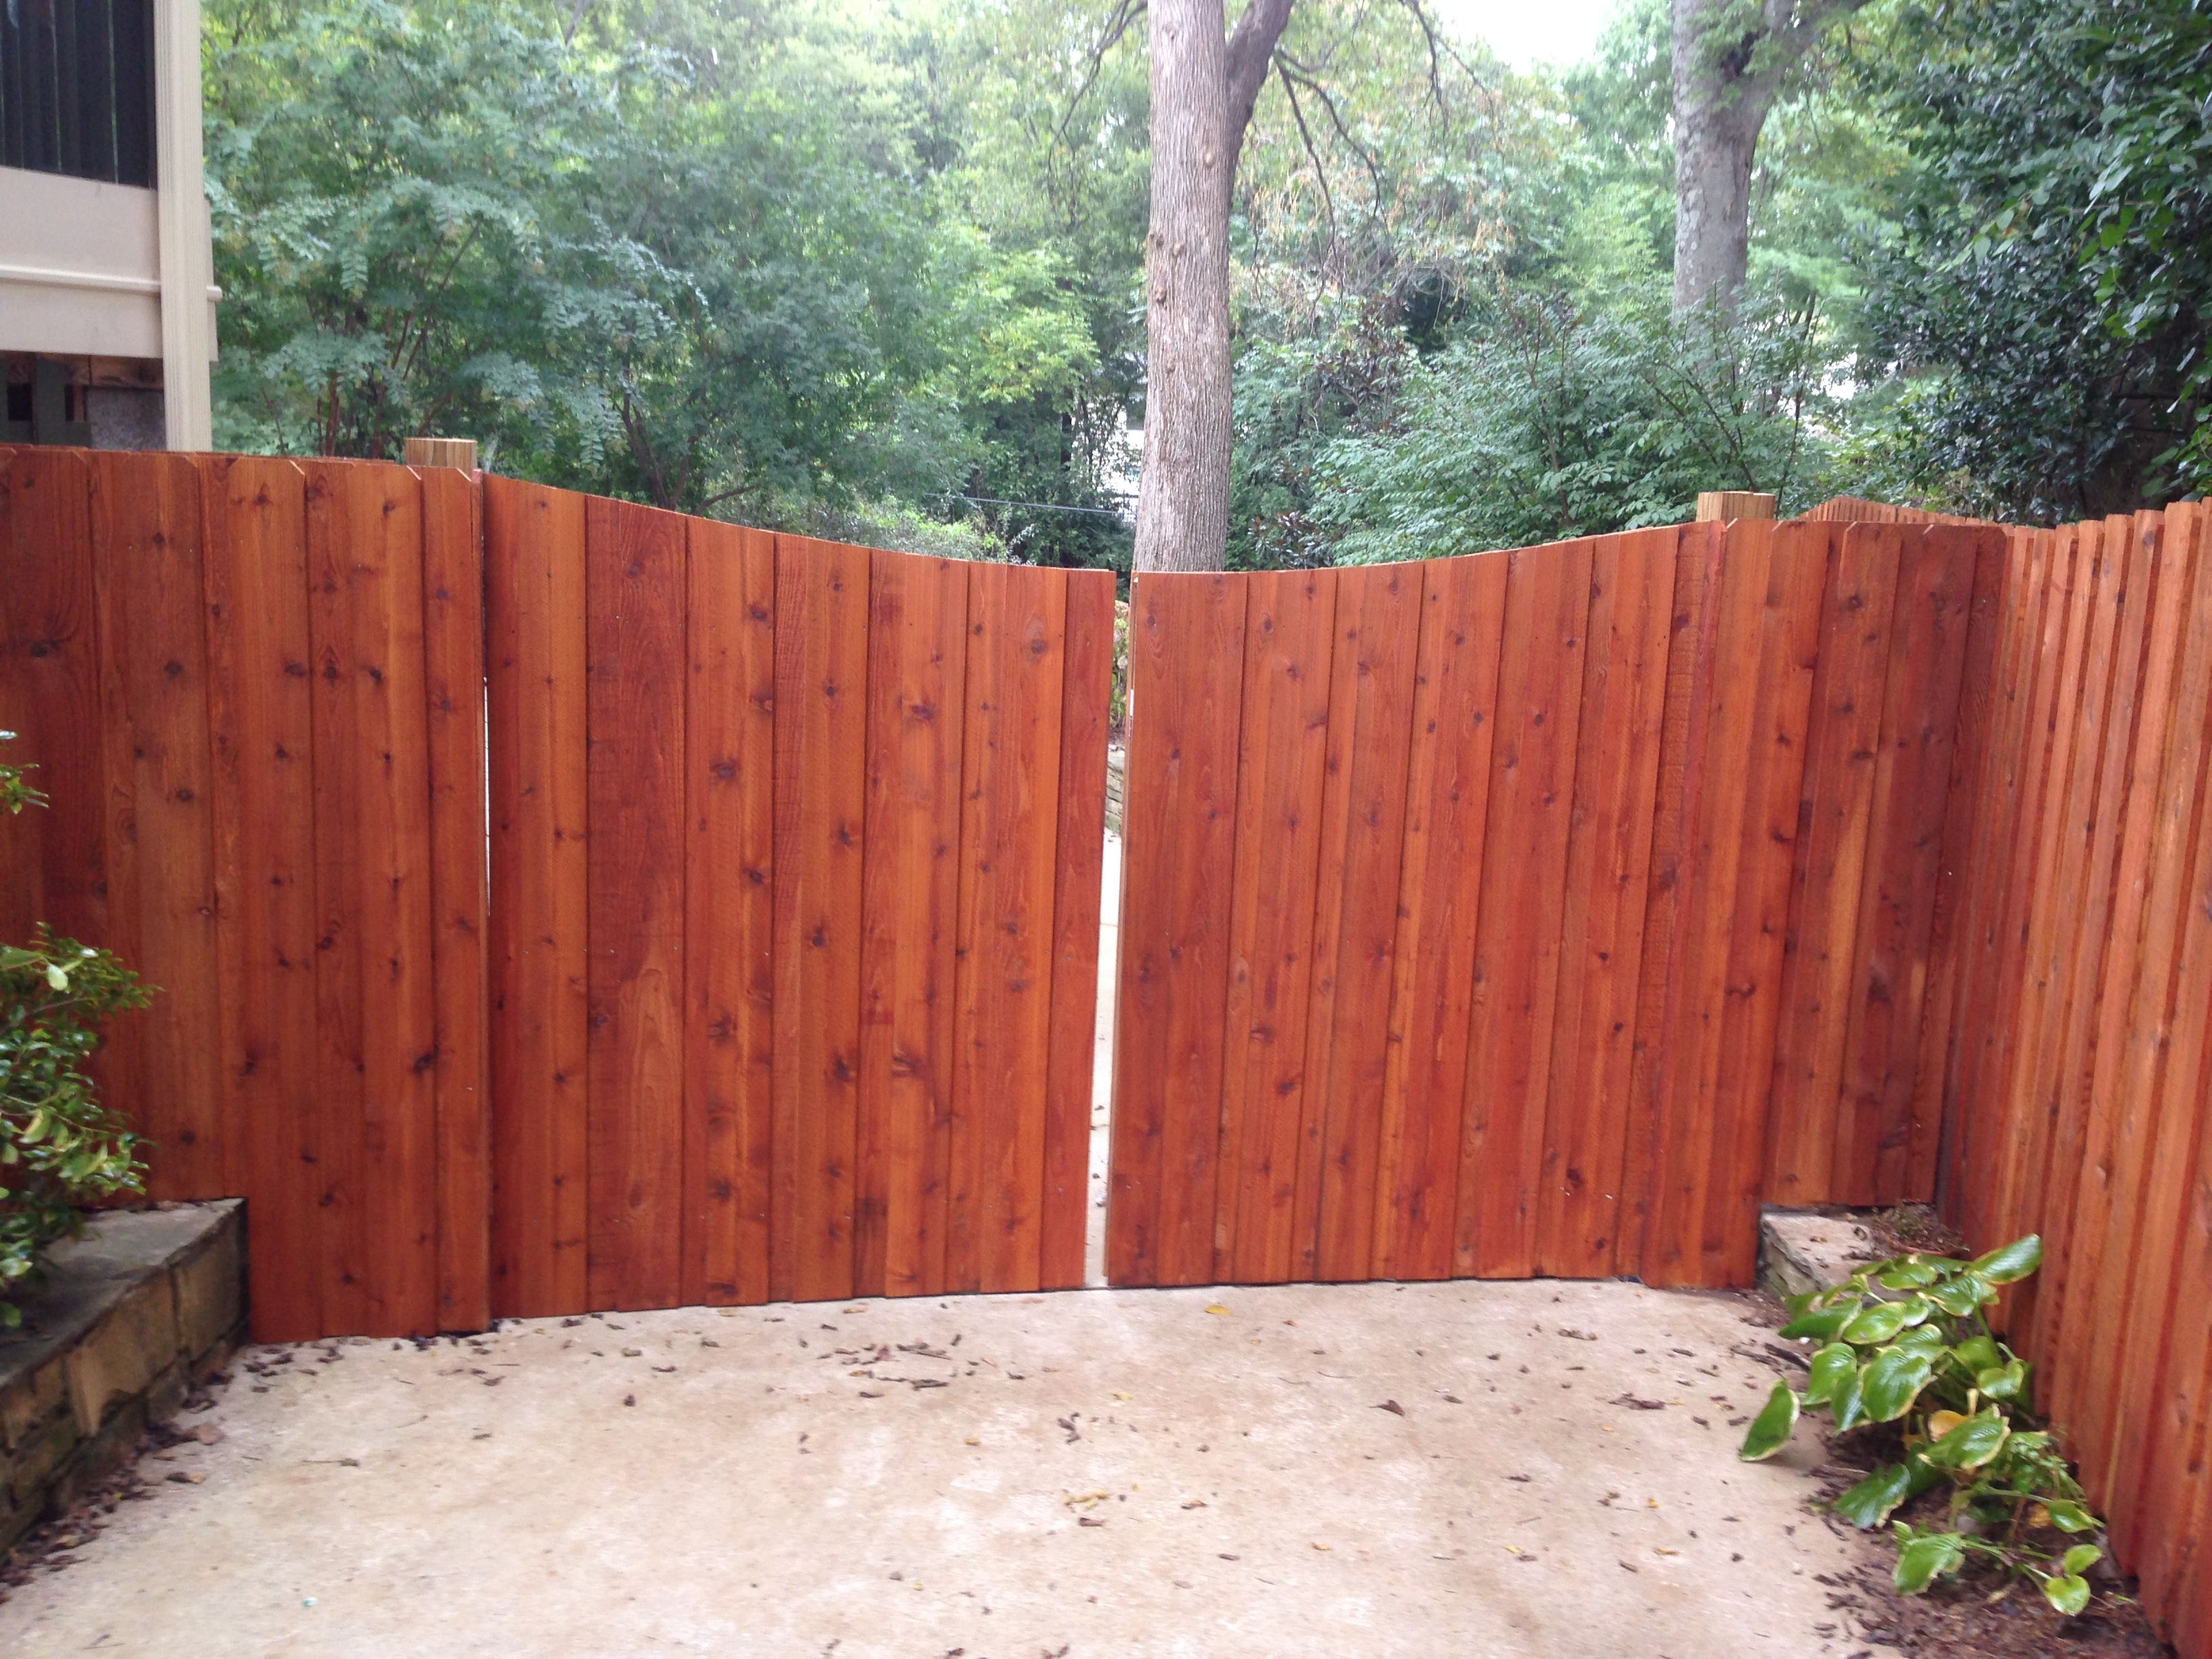 Cedar Tone Fence Stain On Red Western Cedar Privacy Fence In West End Neighborhood Nashville Tn Backyard Fences Cedar Fence Stain Patio Fence